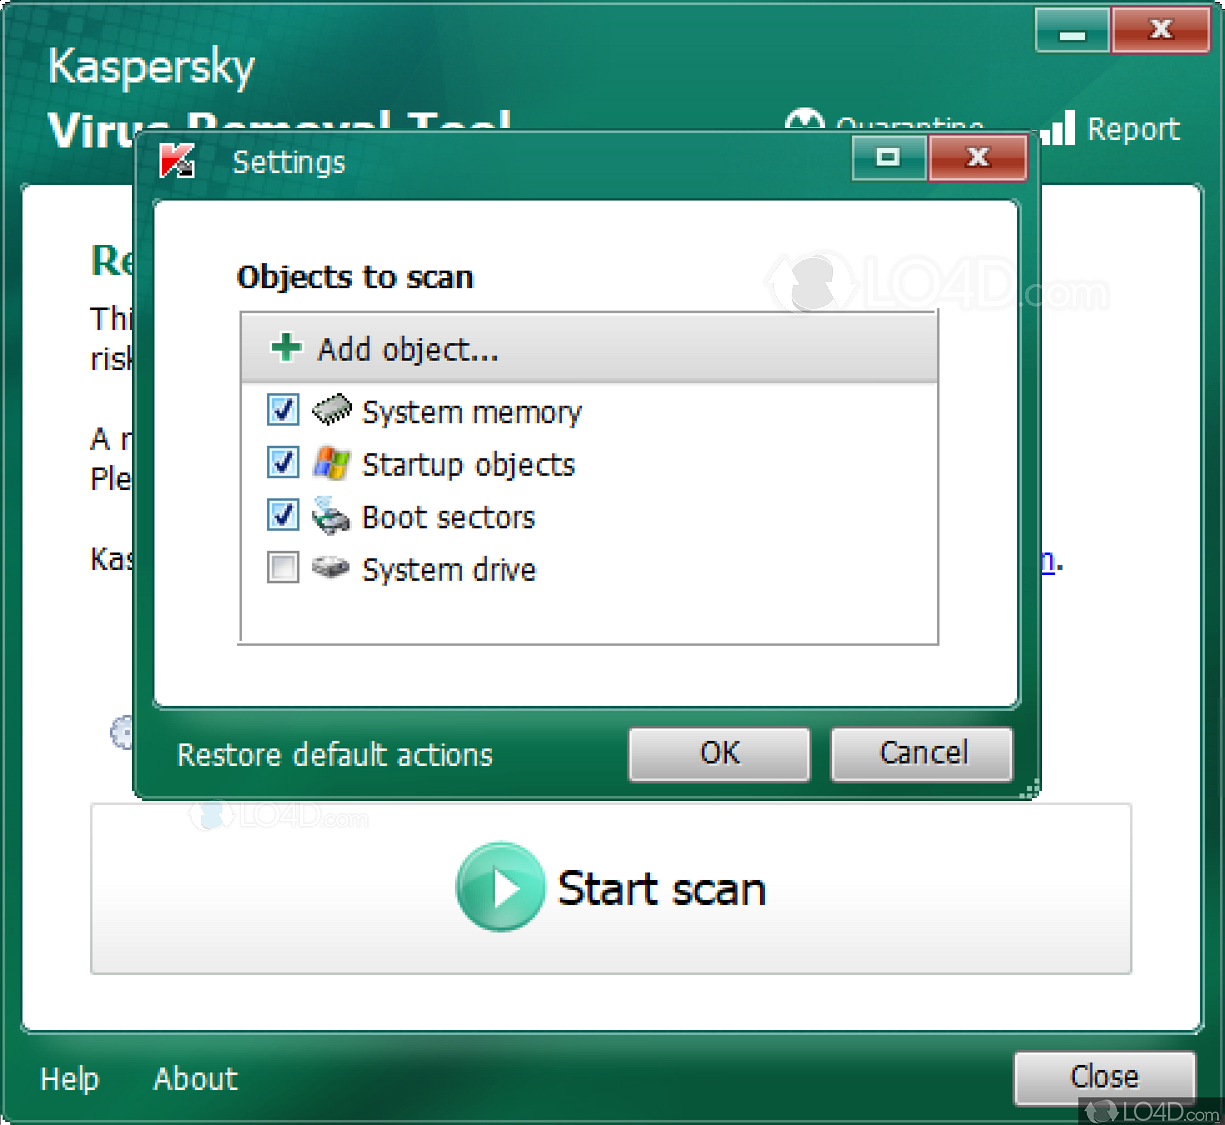 Utility for uninstalling Kaspersky products properly